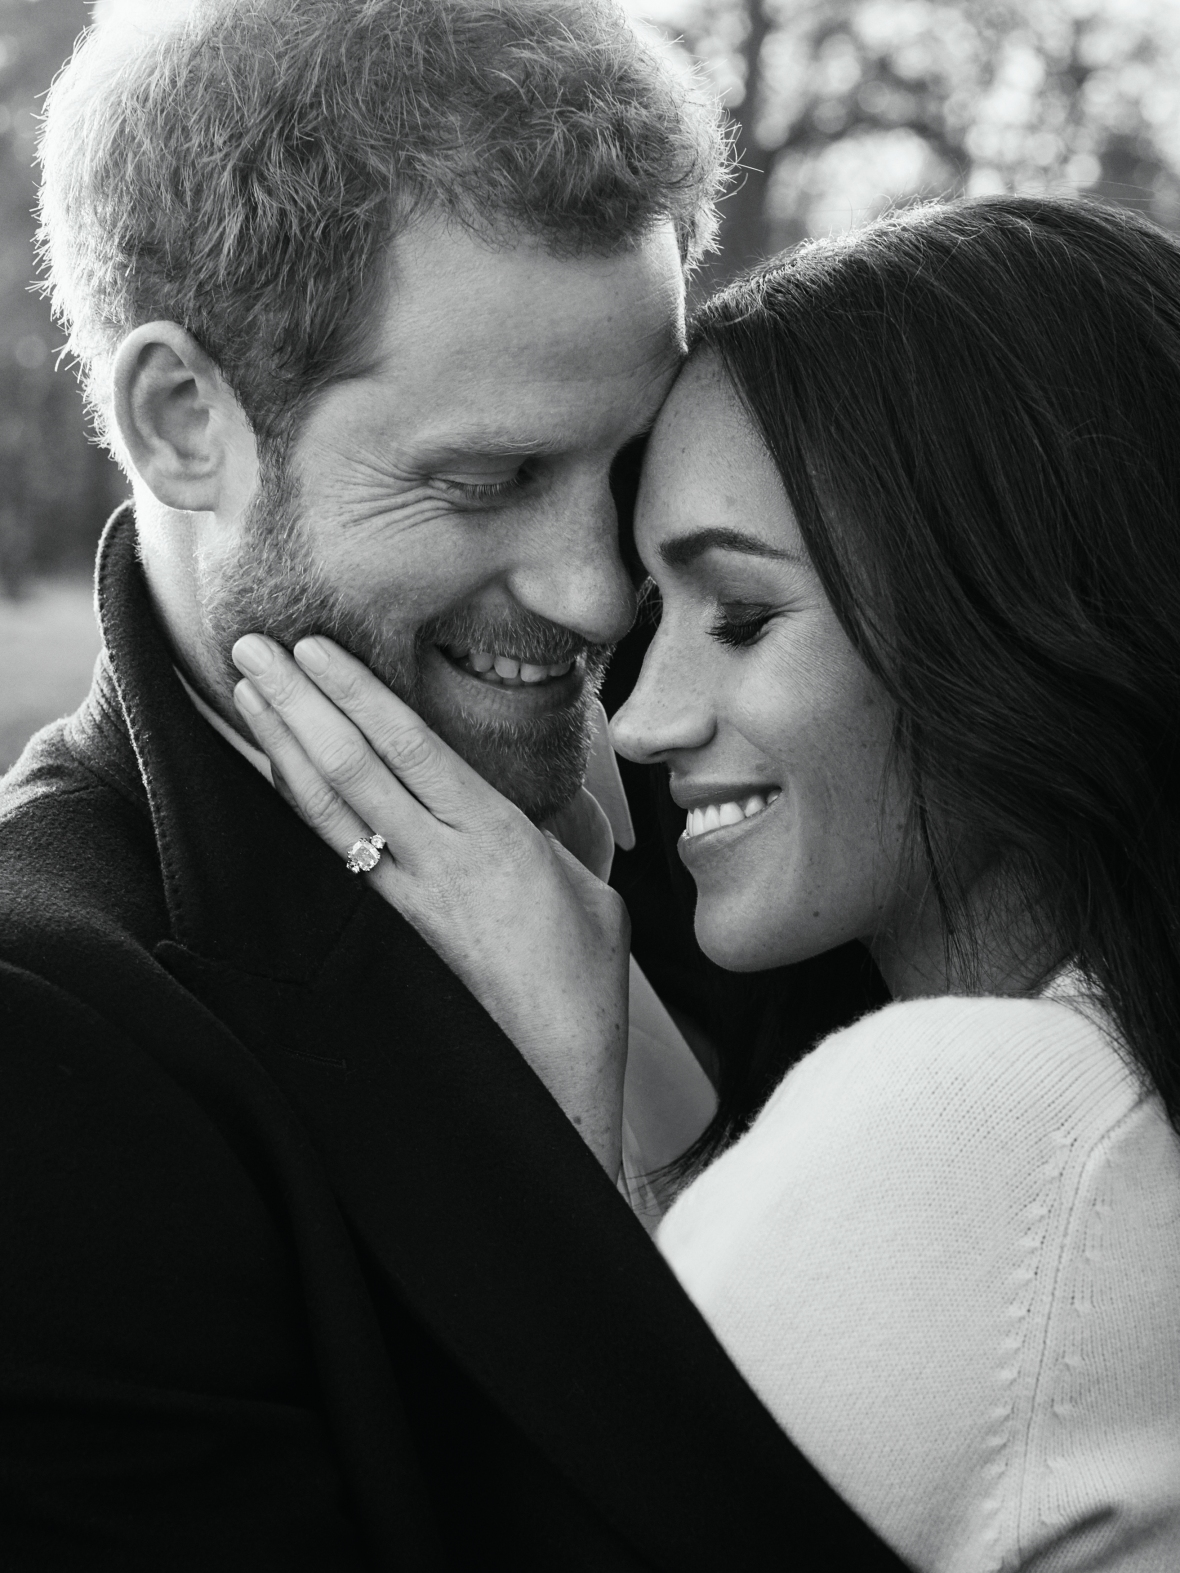 prince harry & meghan markle engagement photo getty images